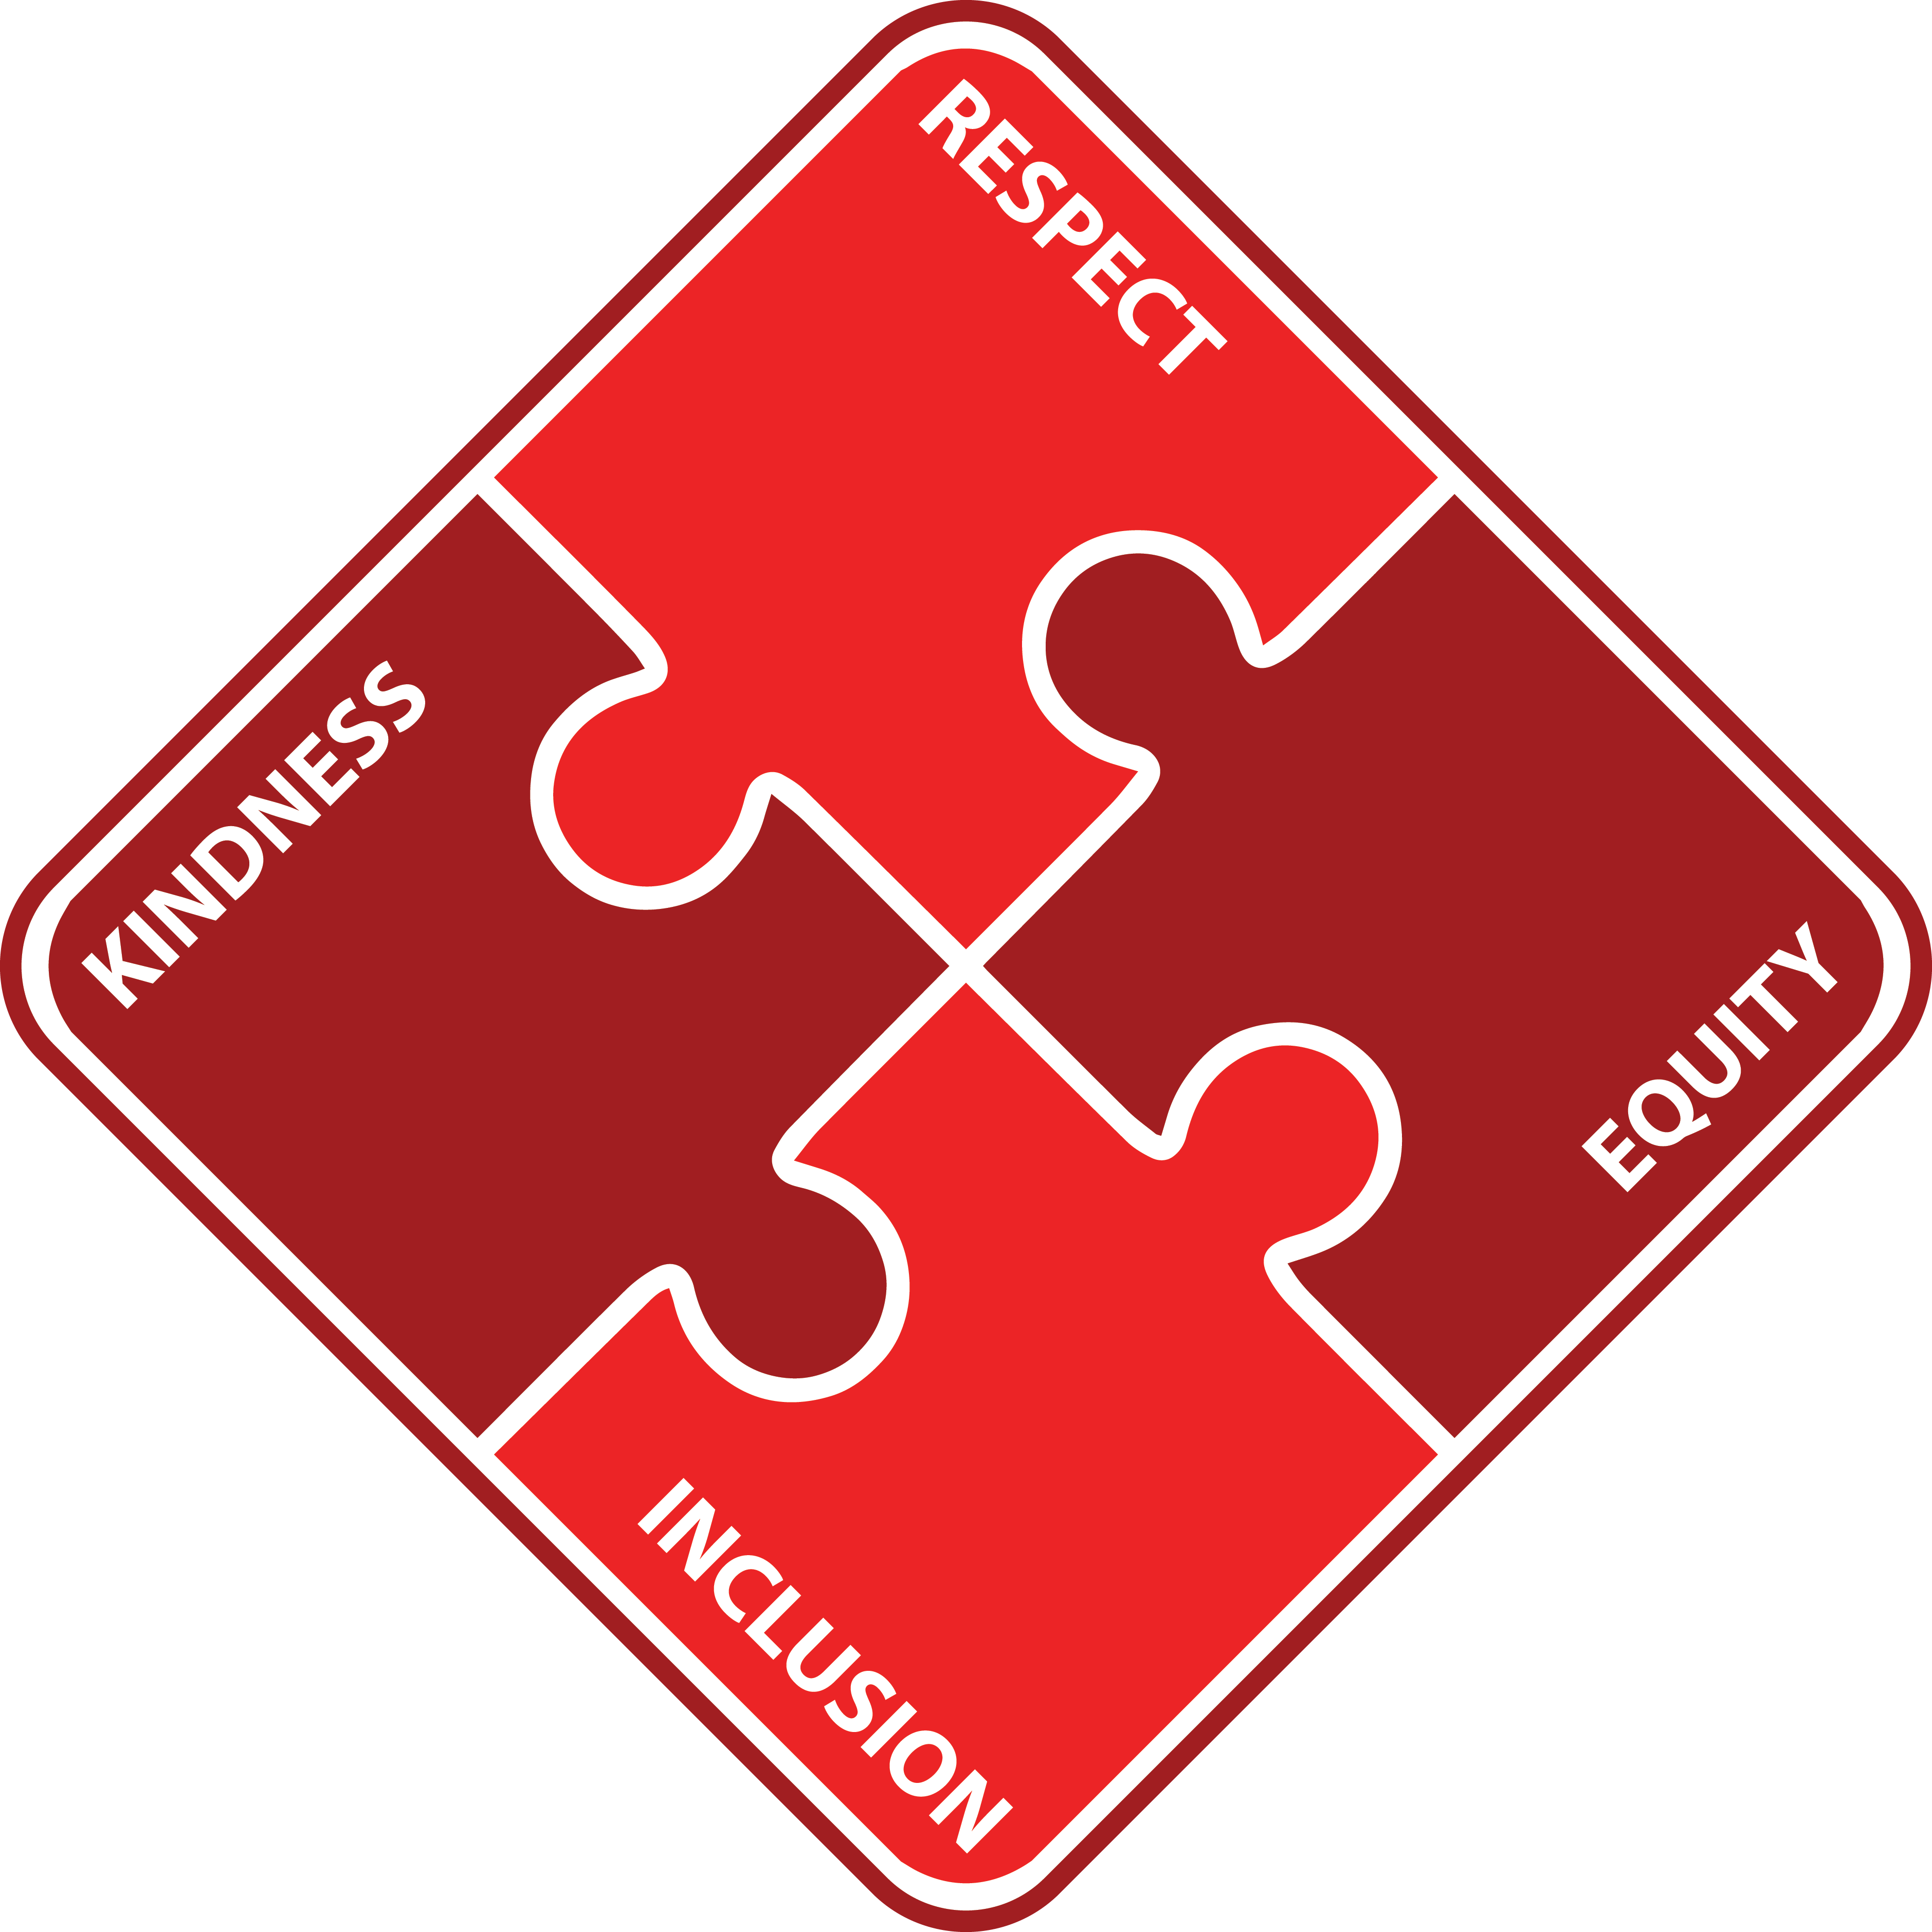 Equity Logo: Kindness, Respect, Equity, Inclusion